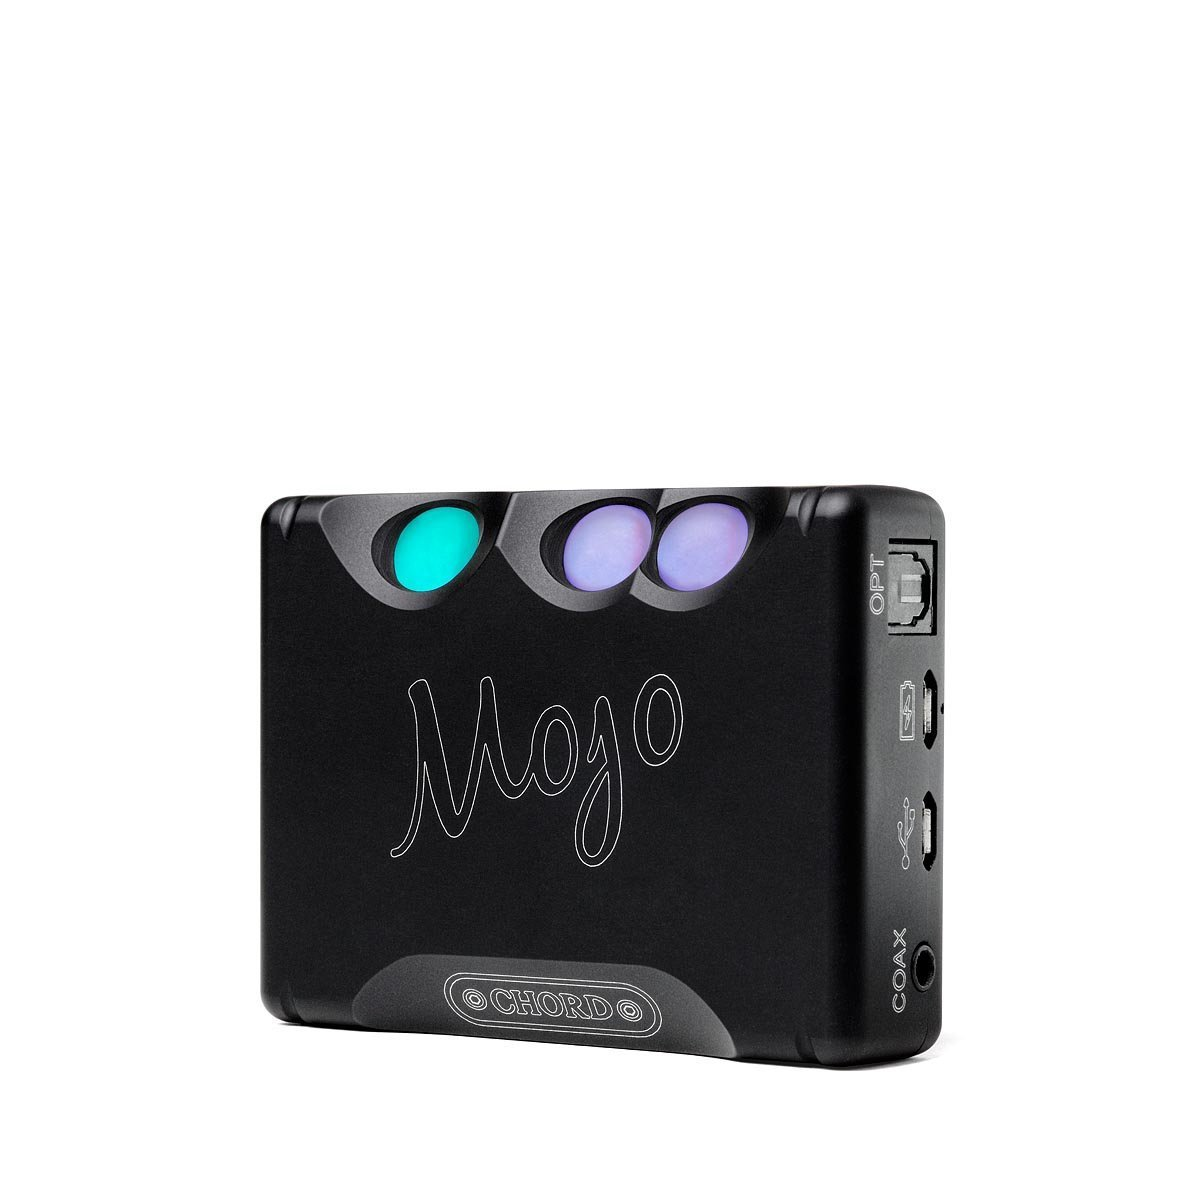 cord lighting. Electronics Apple Bundle: Chord Mojo Ultimate DAC/Headphone Amplifier With The 13 Piece USB Adapter Cable Pack And Lightning To Cord Lighting